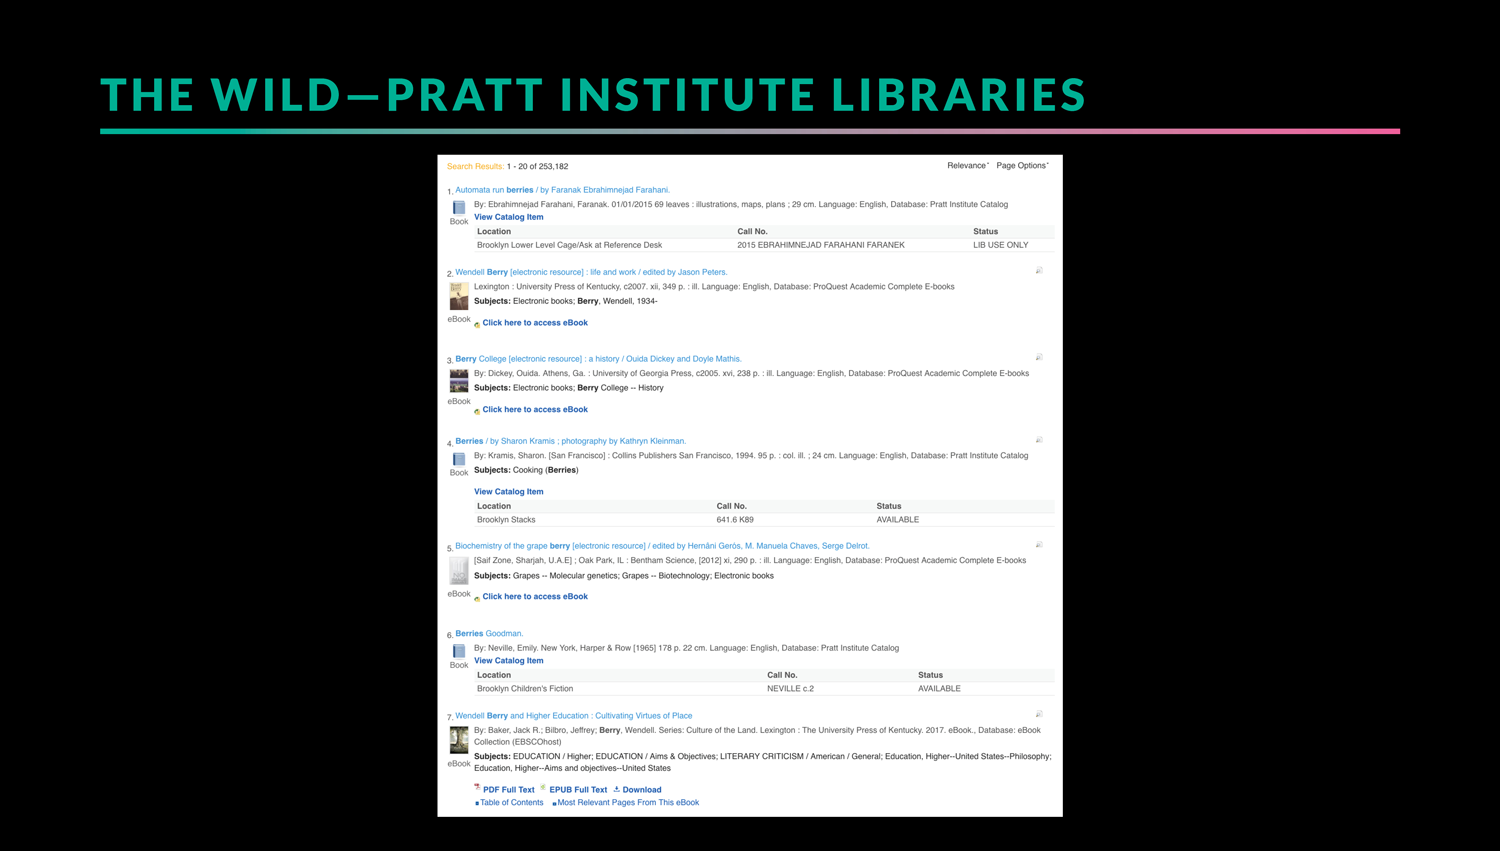 example of search results from a Pratt Institute Libraries quick search